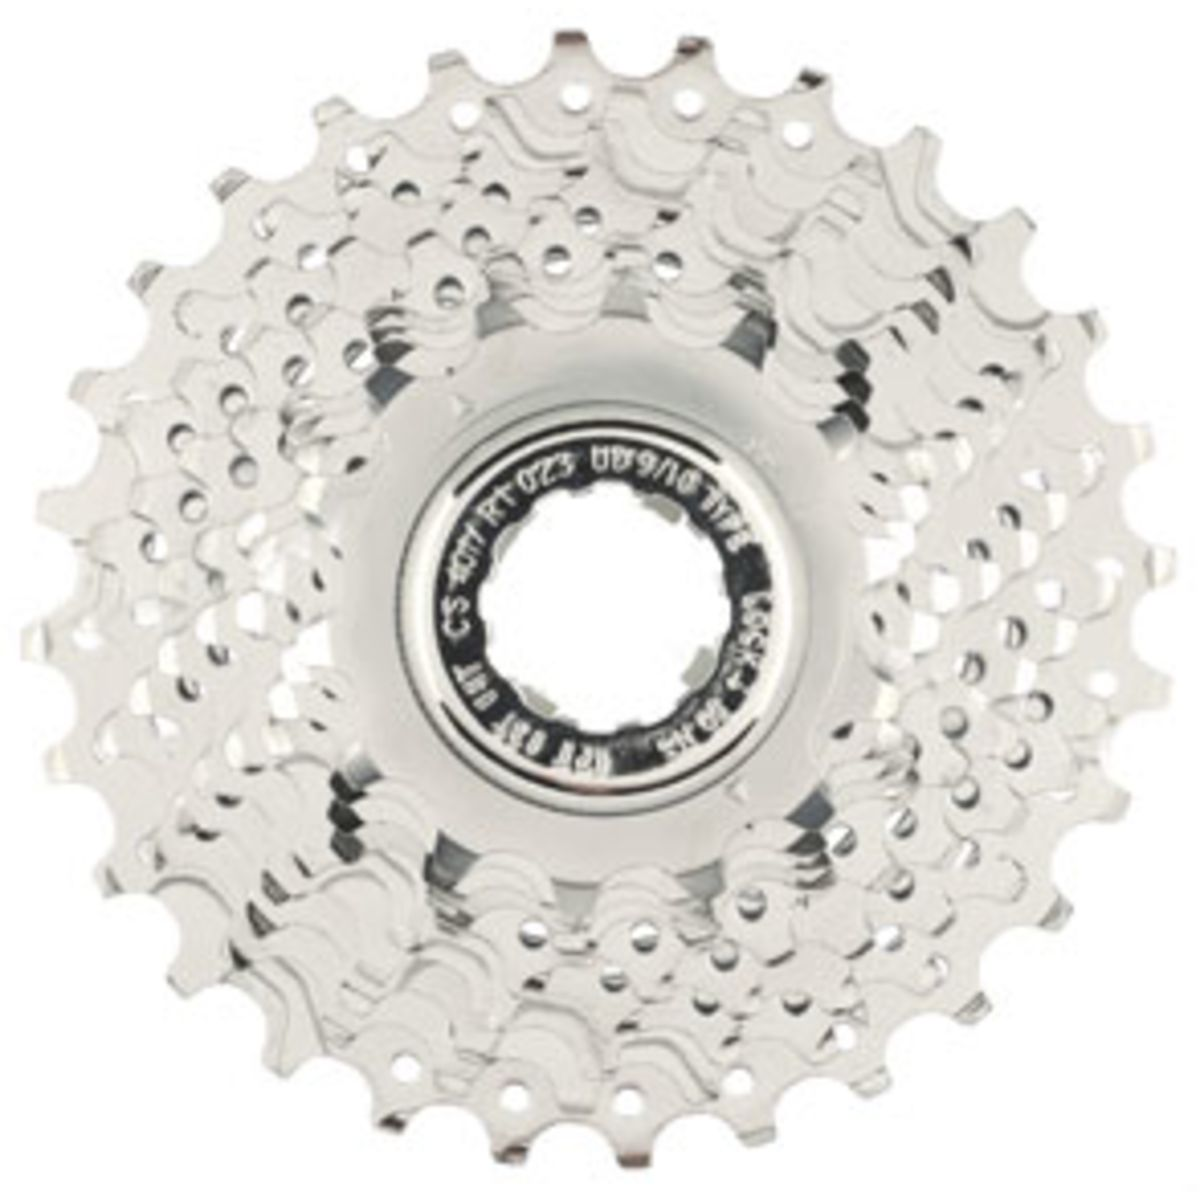 Veloce Ultra-Drive 9-speed cassette 14-28 ratio